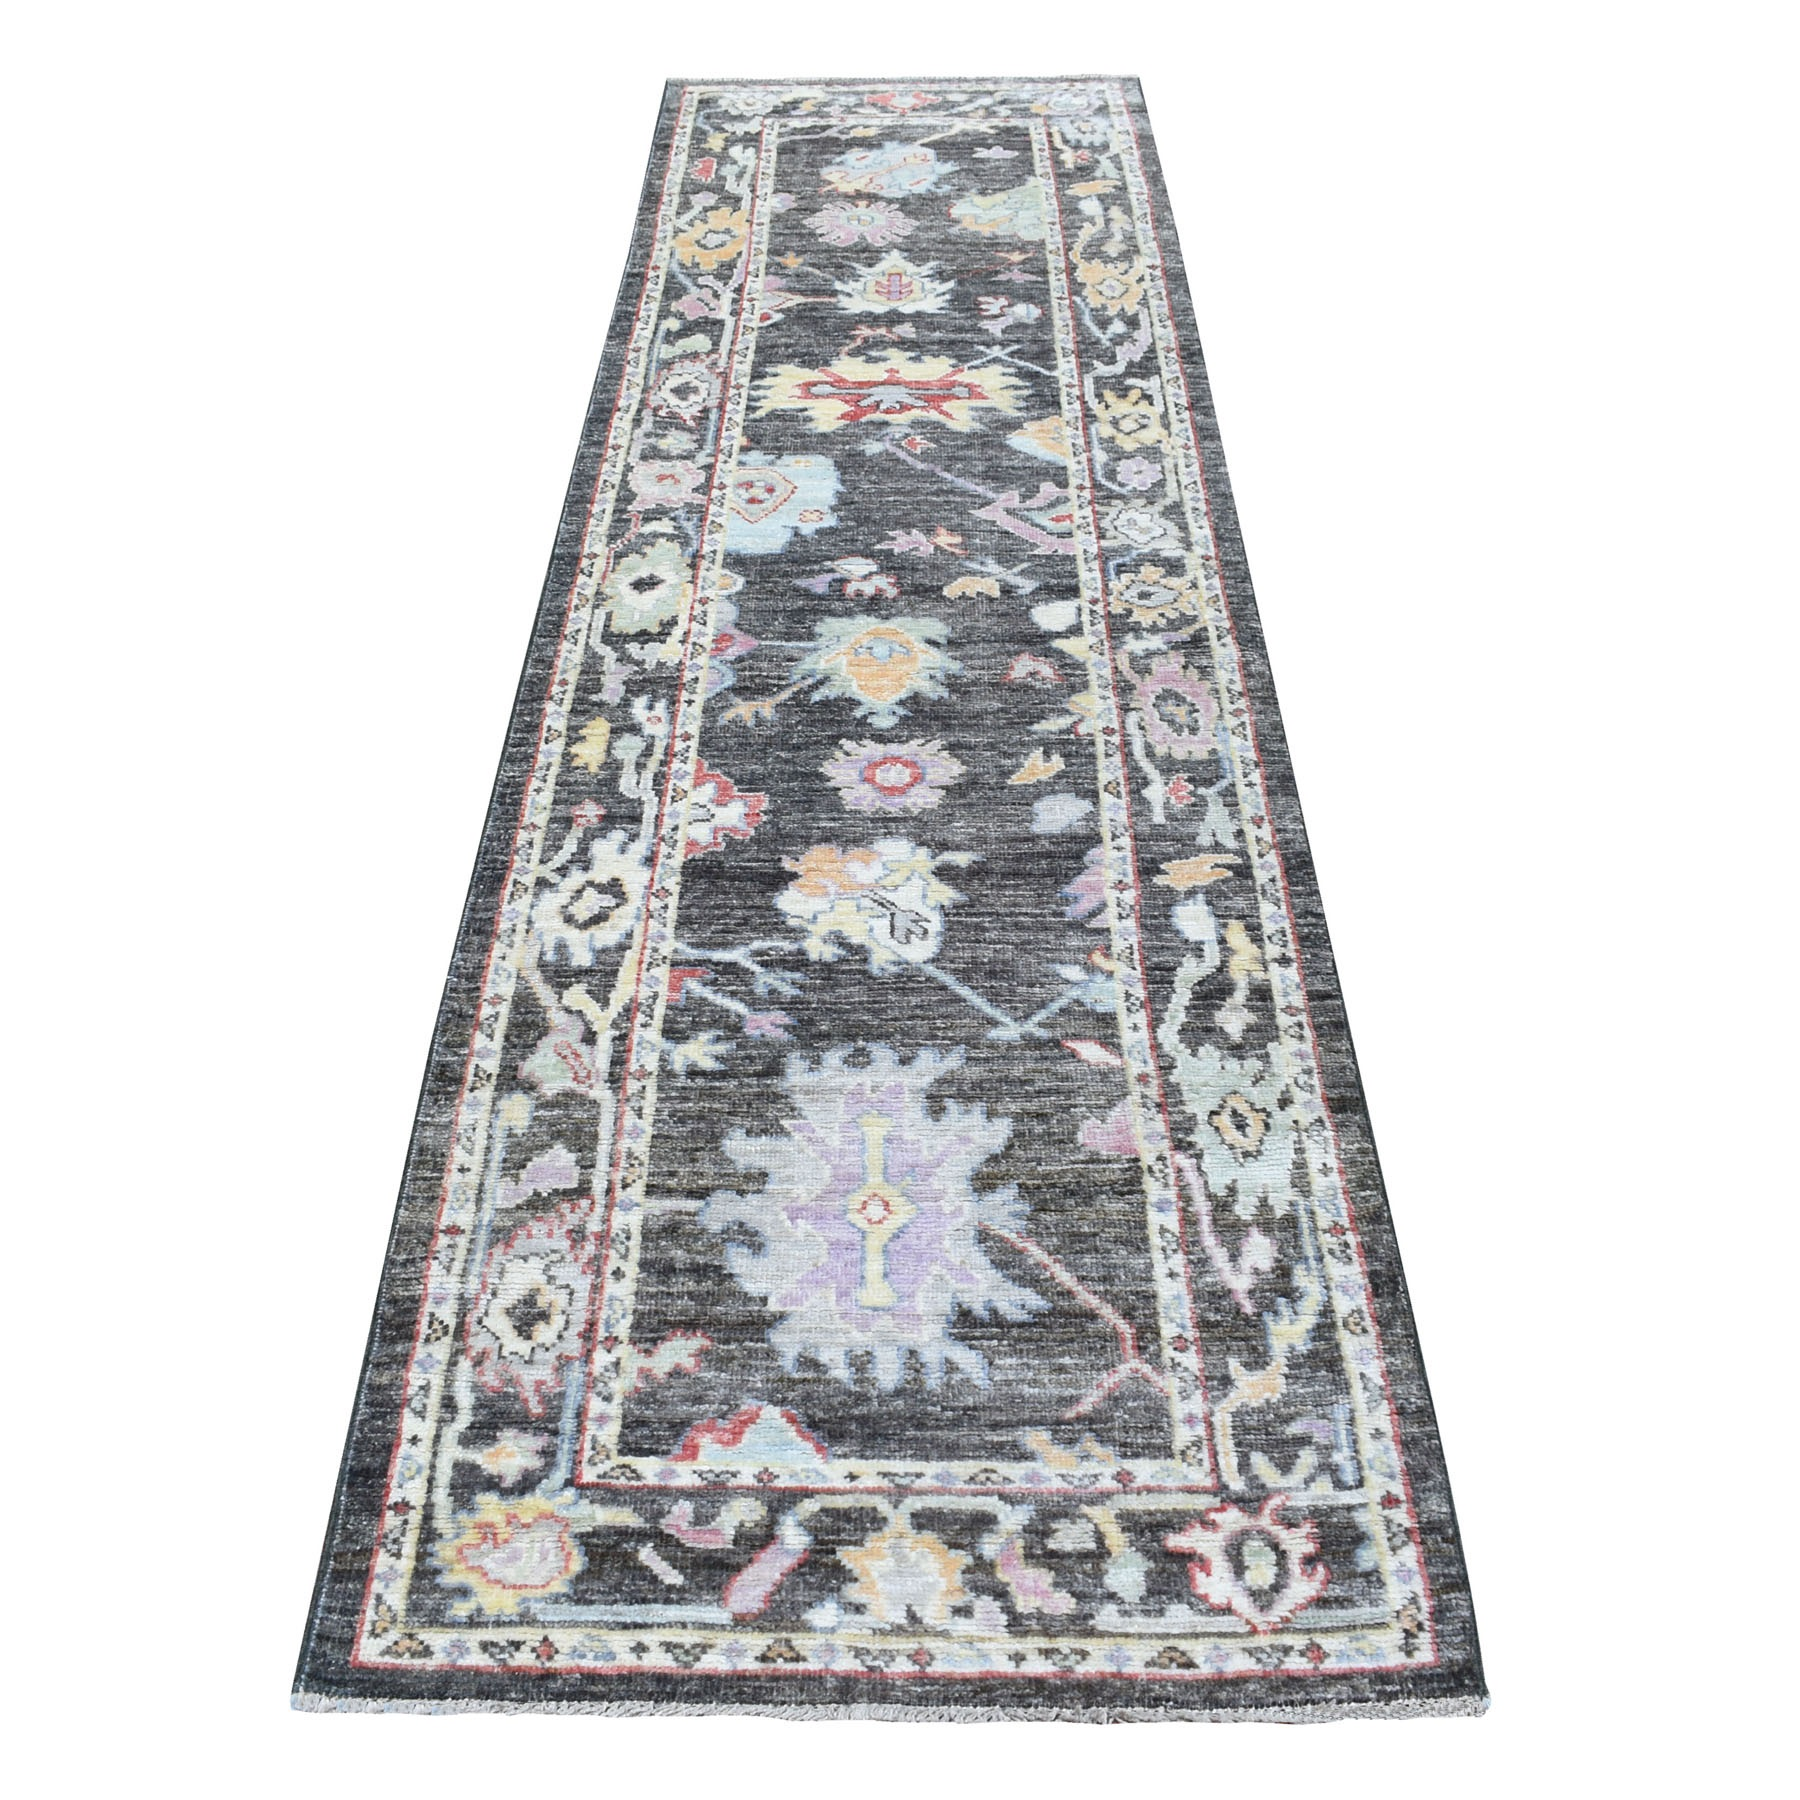 Agra And Turkish Collection Hand Knotted Black Rug No: 1113192